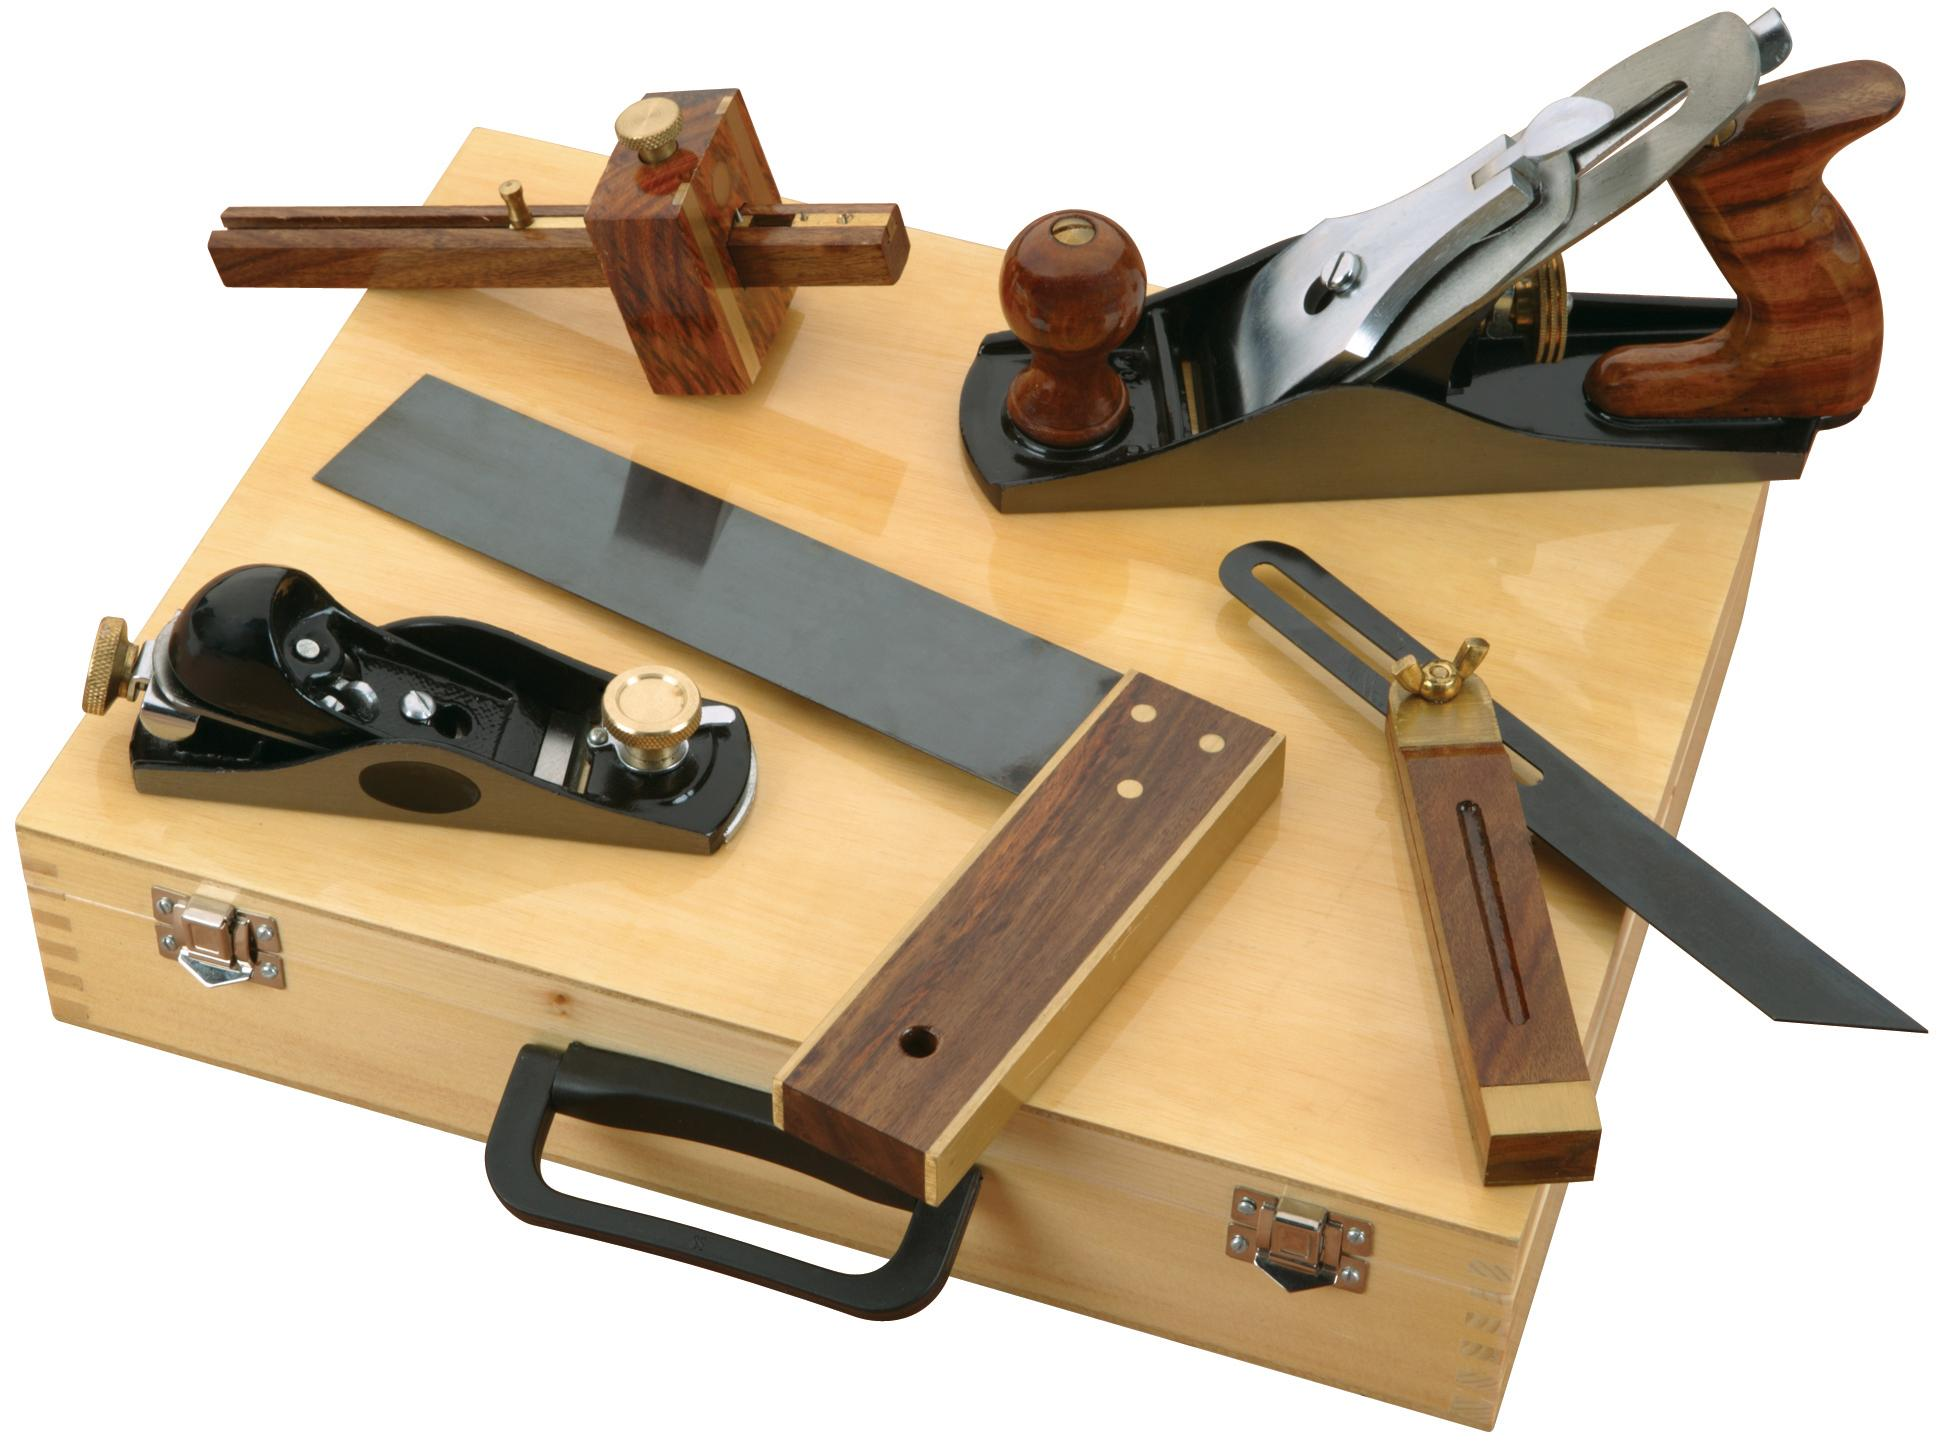 hand tools Tools|hand tools services: see how we can help with your next property improvement project, custom products, product support, and more.